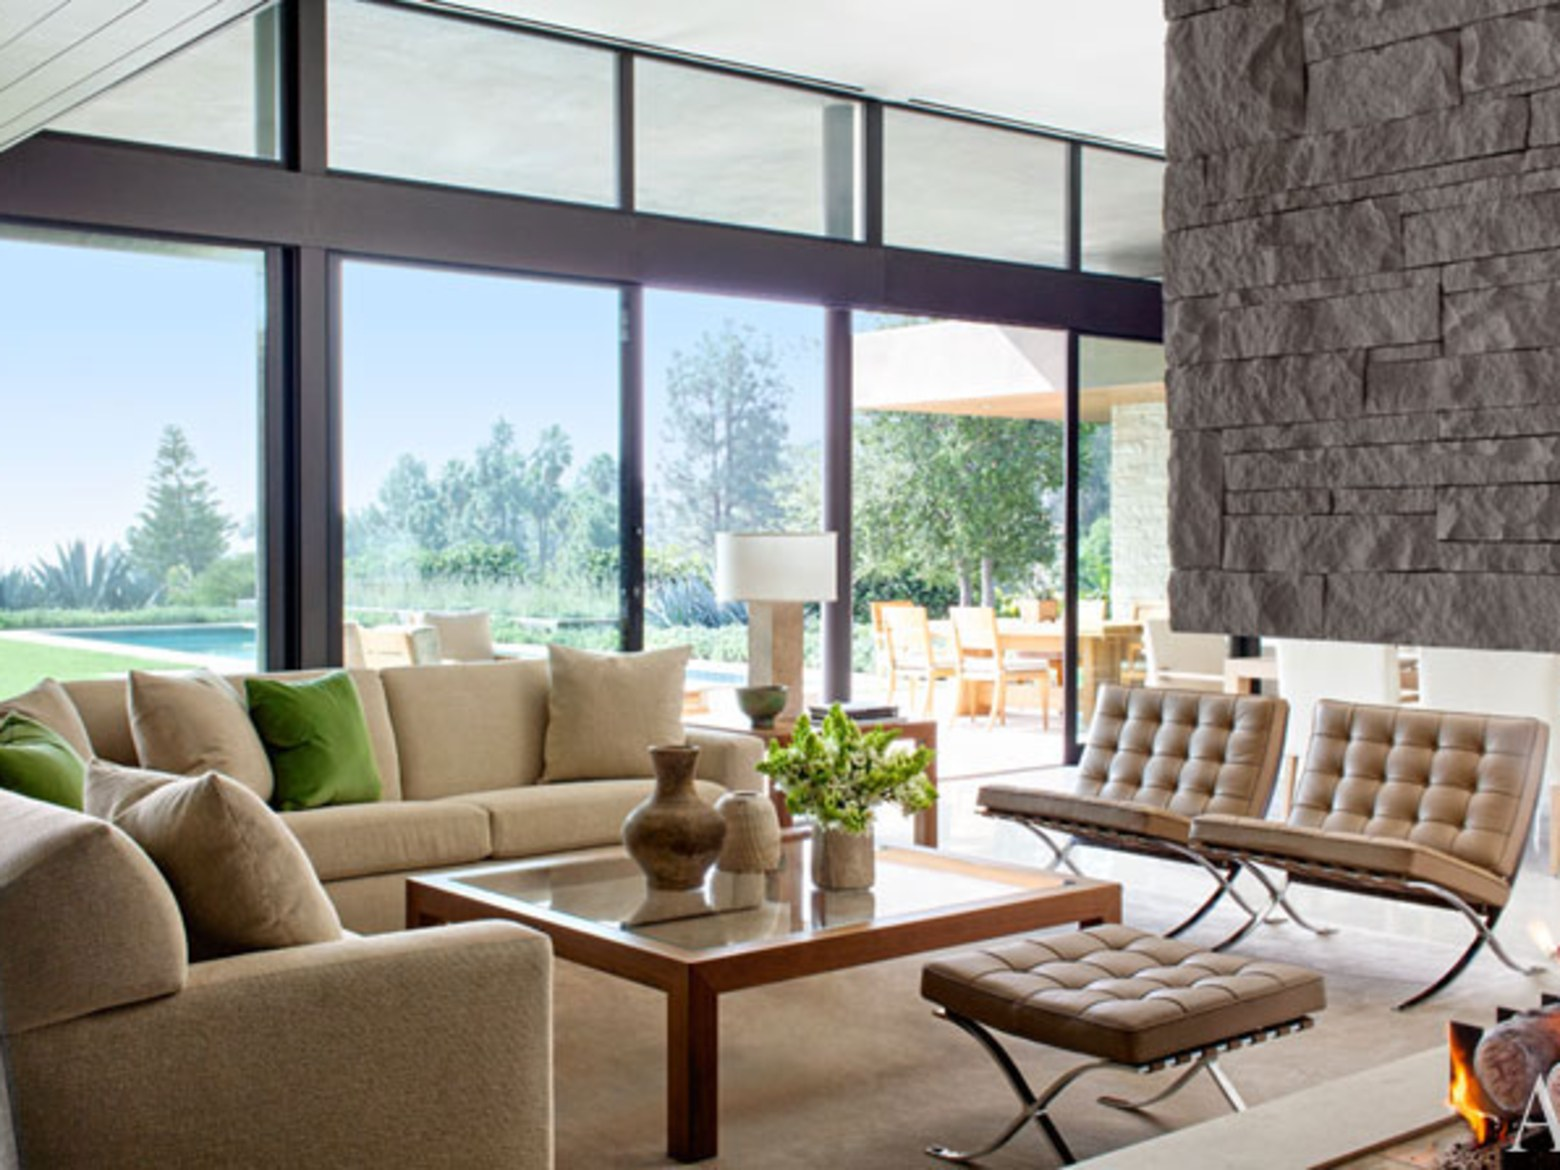 living room design by marmol radziner 10 Beautiful Living Room Design by Marmol Radziner 10 Beautiful Living Room Design by Marmol Radziner 08